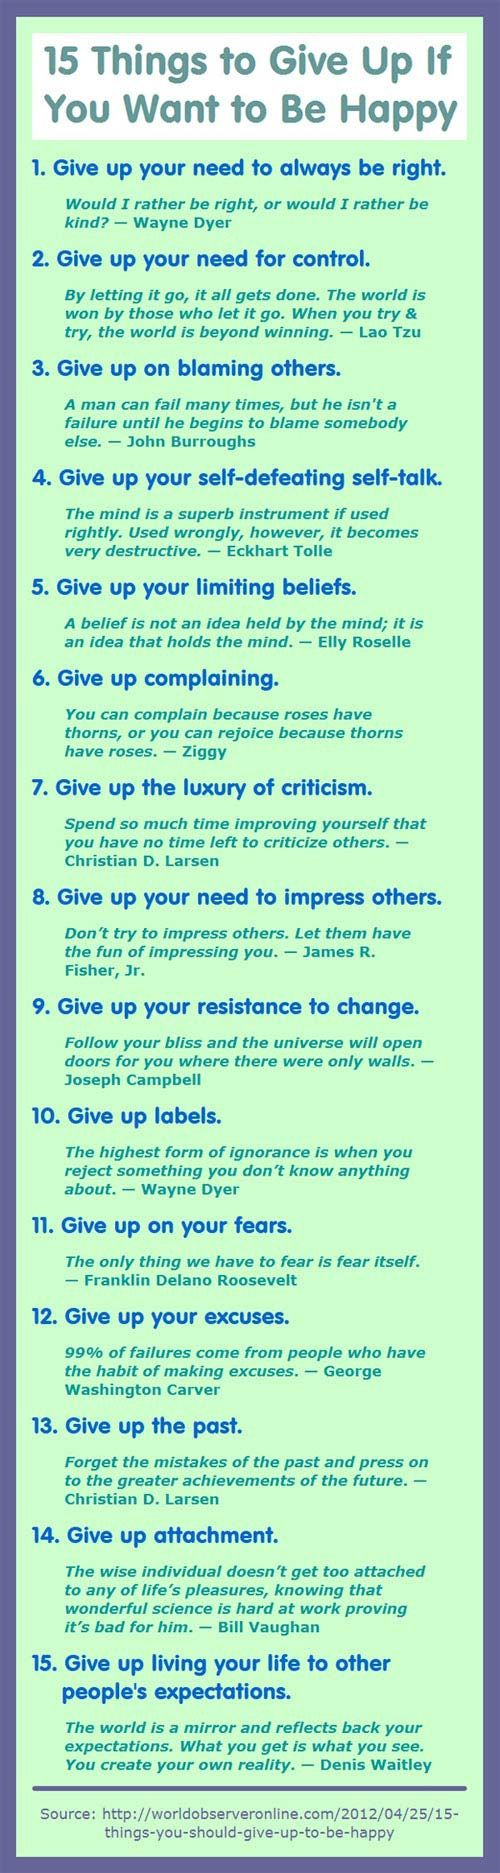 15 Things to Give Up if You Want to be Happy (I wld love to, but this will/wld b very difficult.)